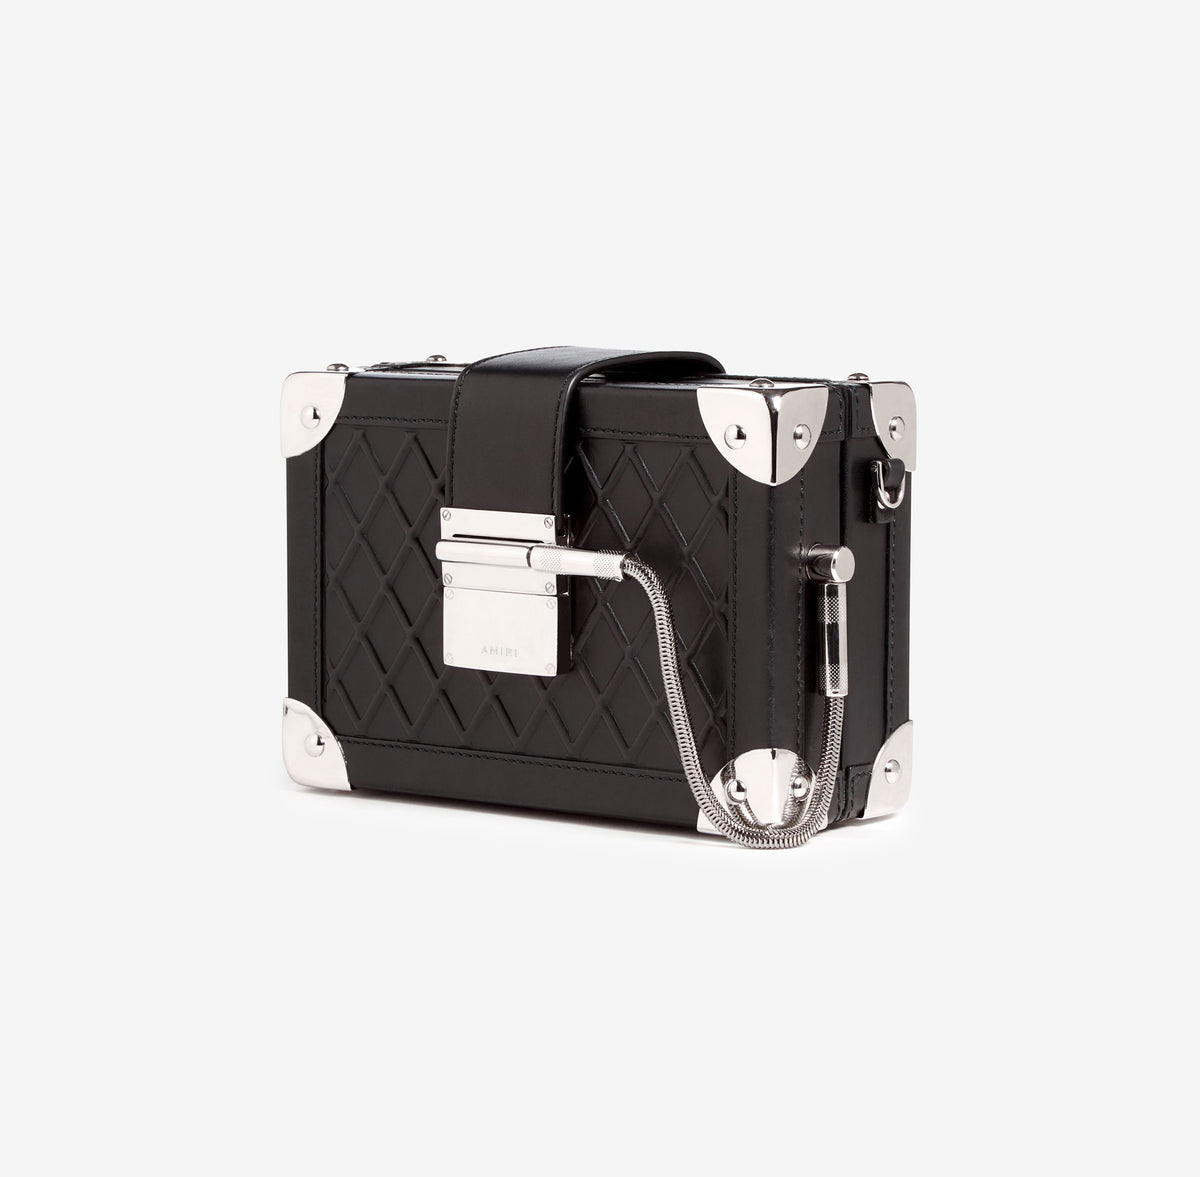 files/A_Bags_Amp_Box_Bag_Blk-Side_SQ.jpg